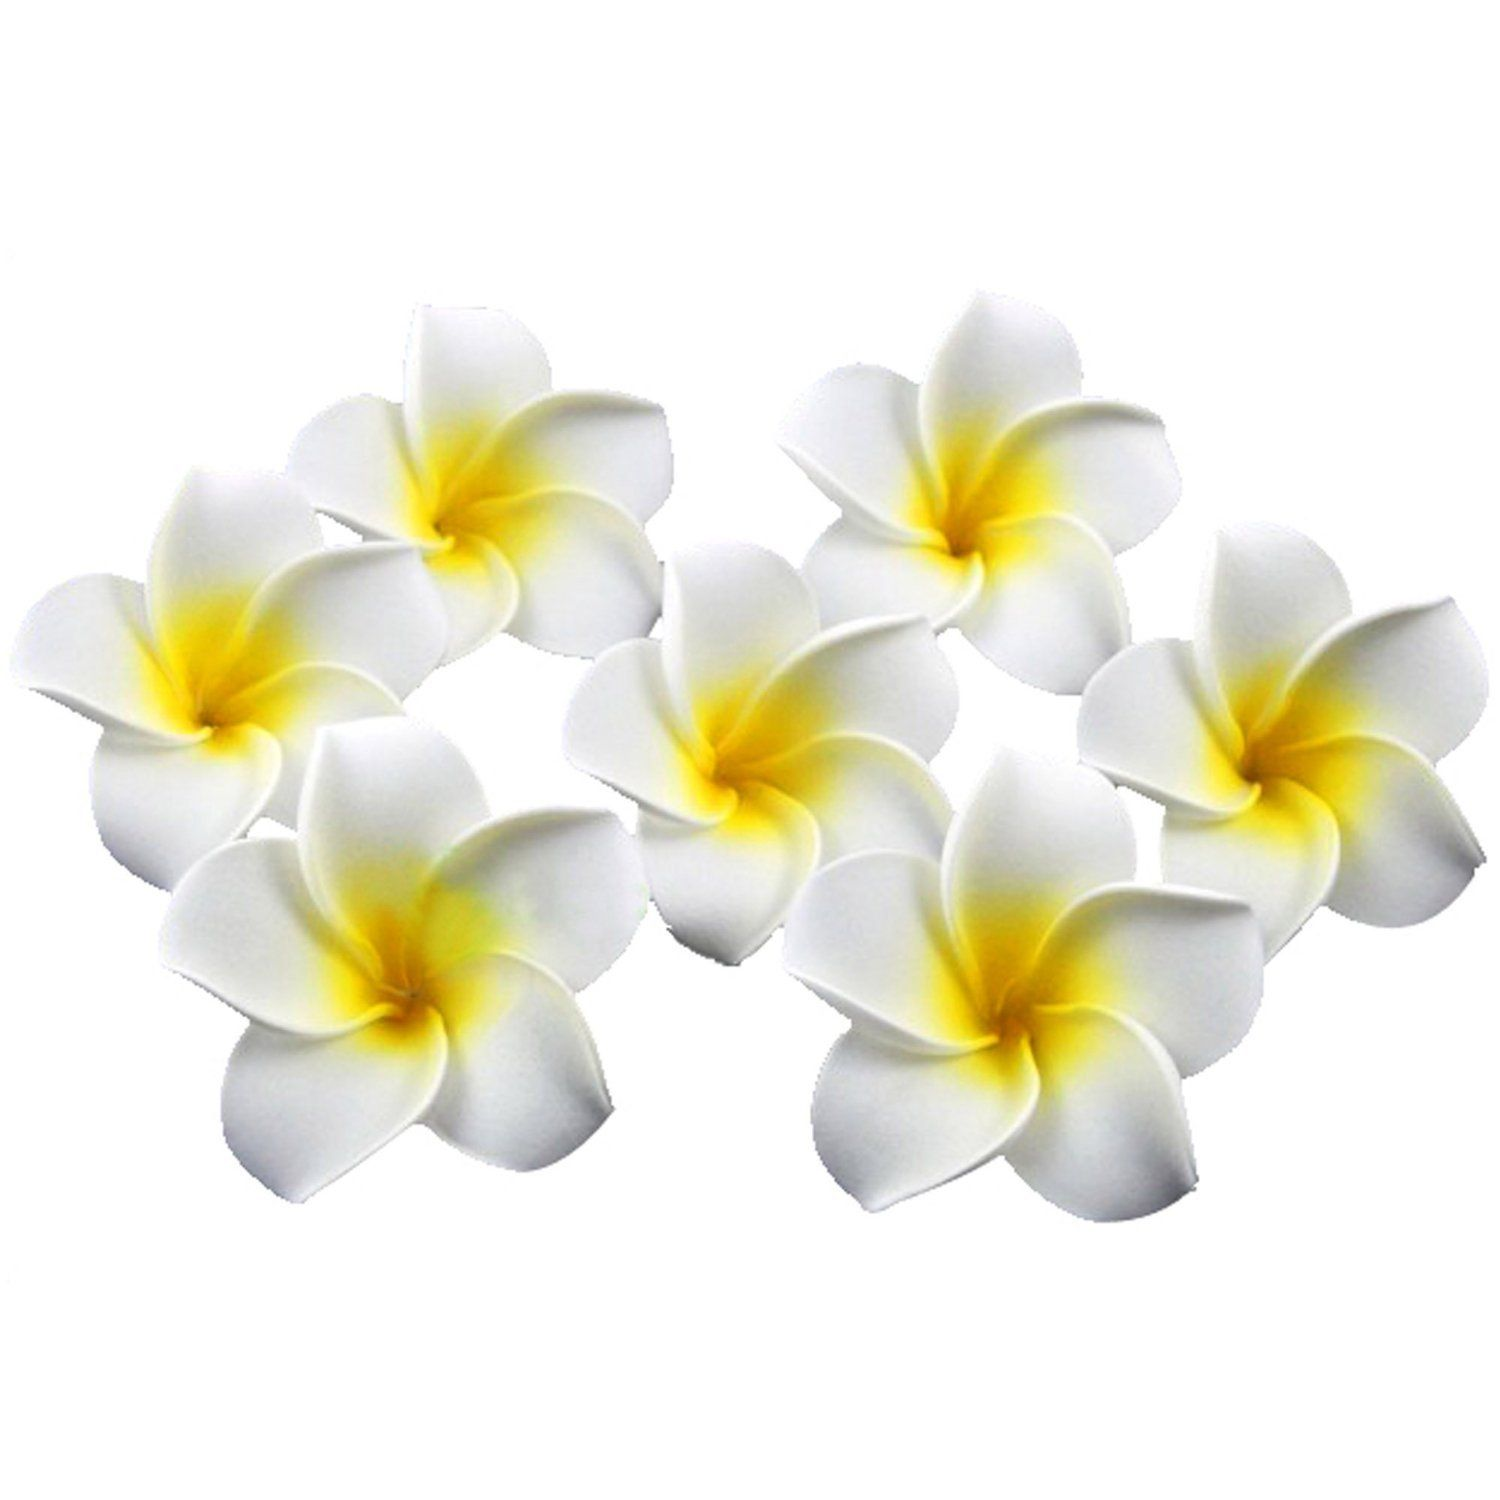 Eforcase 4cm eva white and yellow plumeria rubra hawaiian fake eforcase 4cm eva white and yellow plumeria rubra hawaiian fake artificial flower petals for weddingpartyhome decor decoration 100 pcsbag want to izmirmasajfo